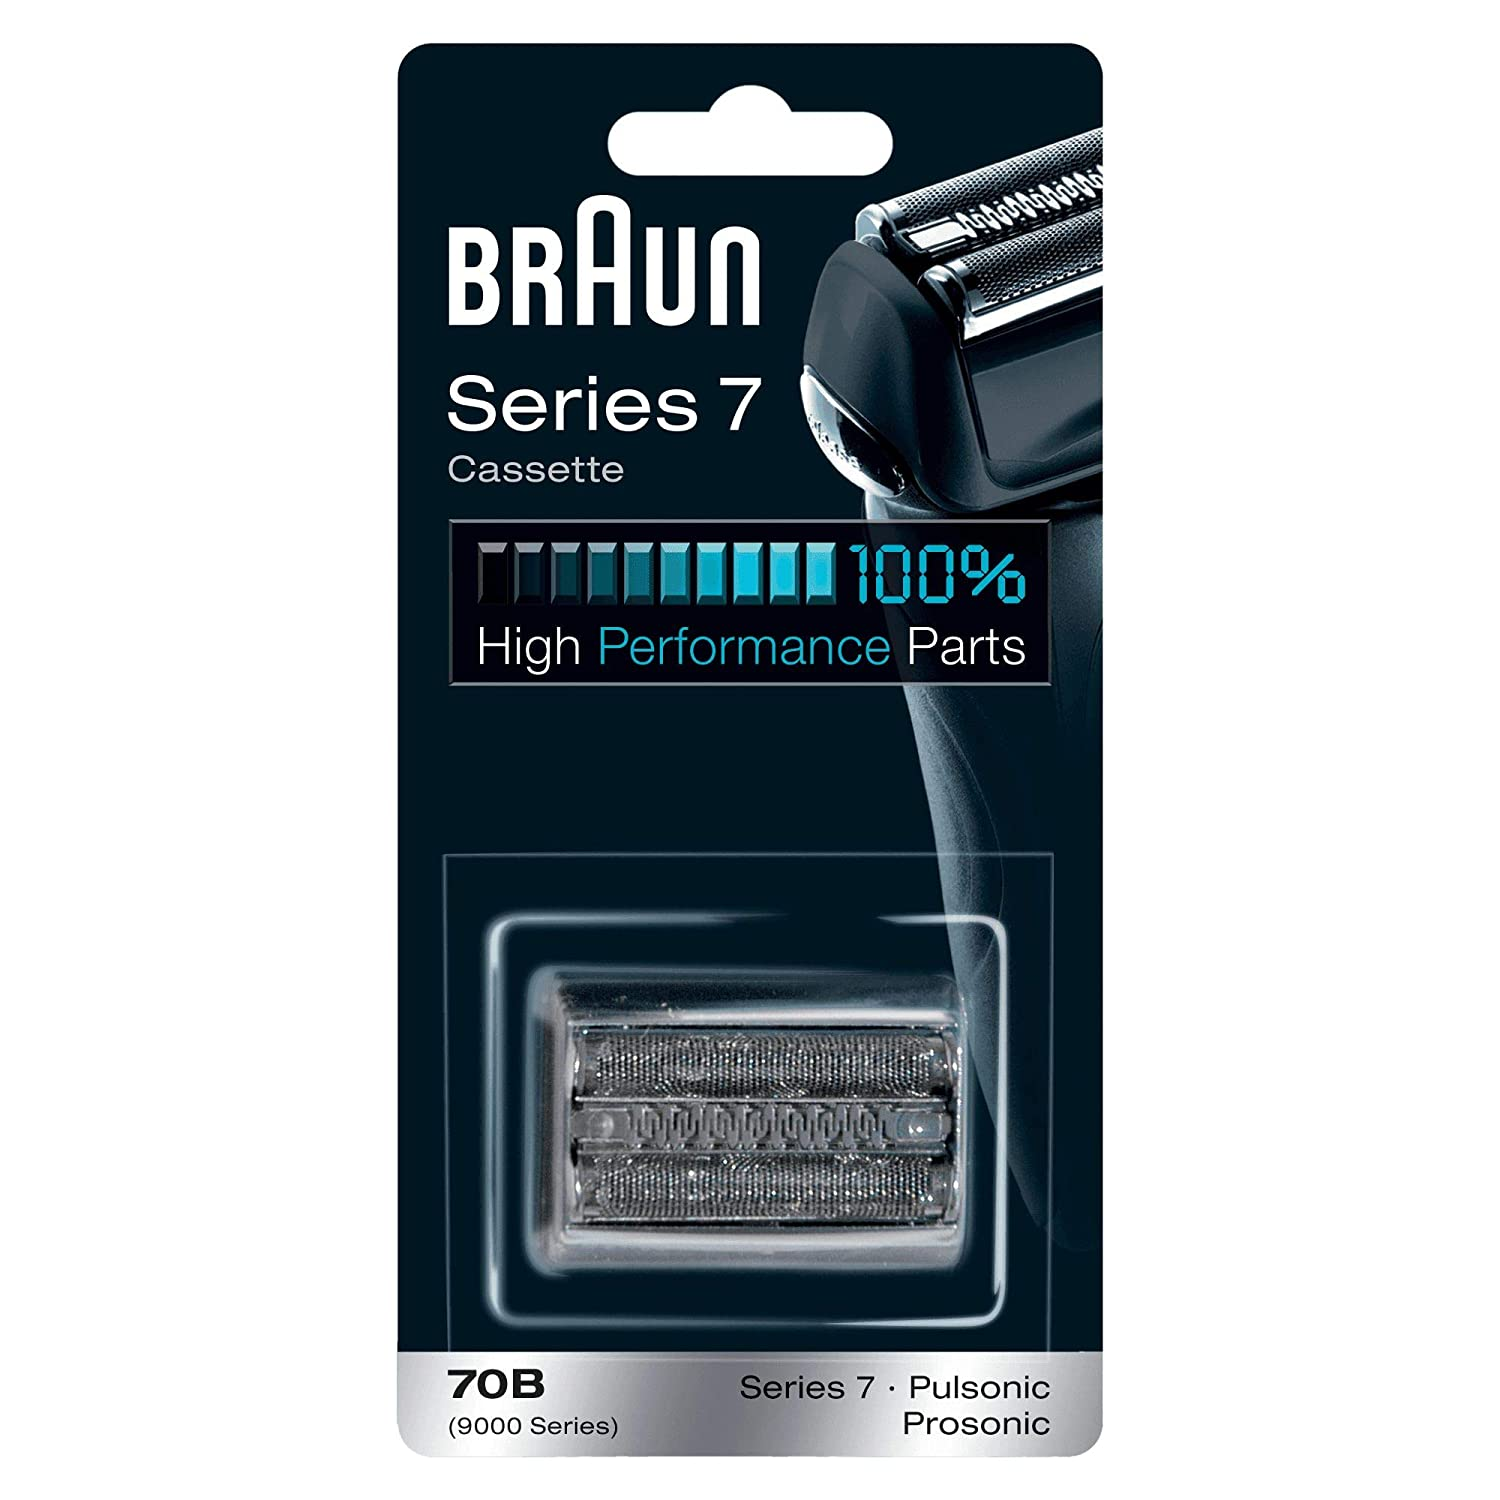 Braun Replacement Shaver 70 B Black, Compatible with Series 7 Razors